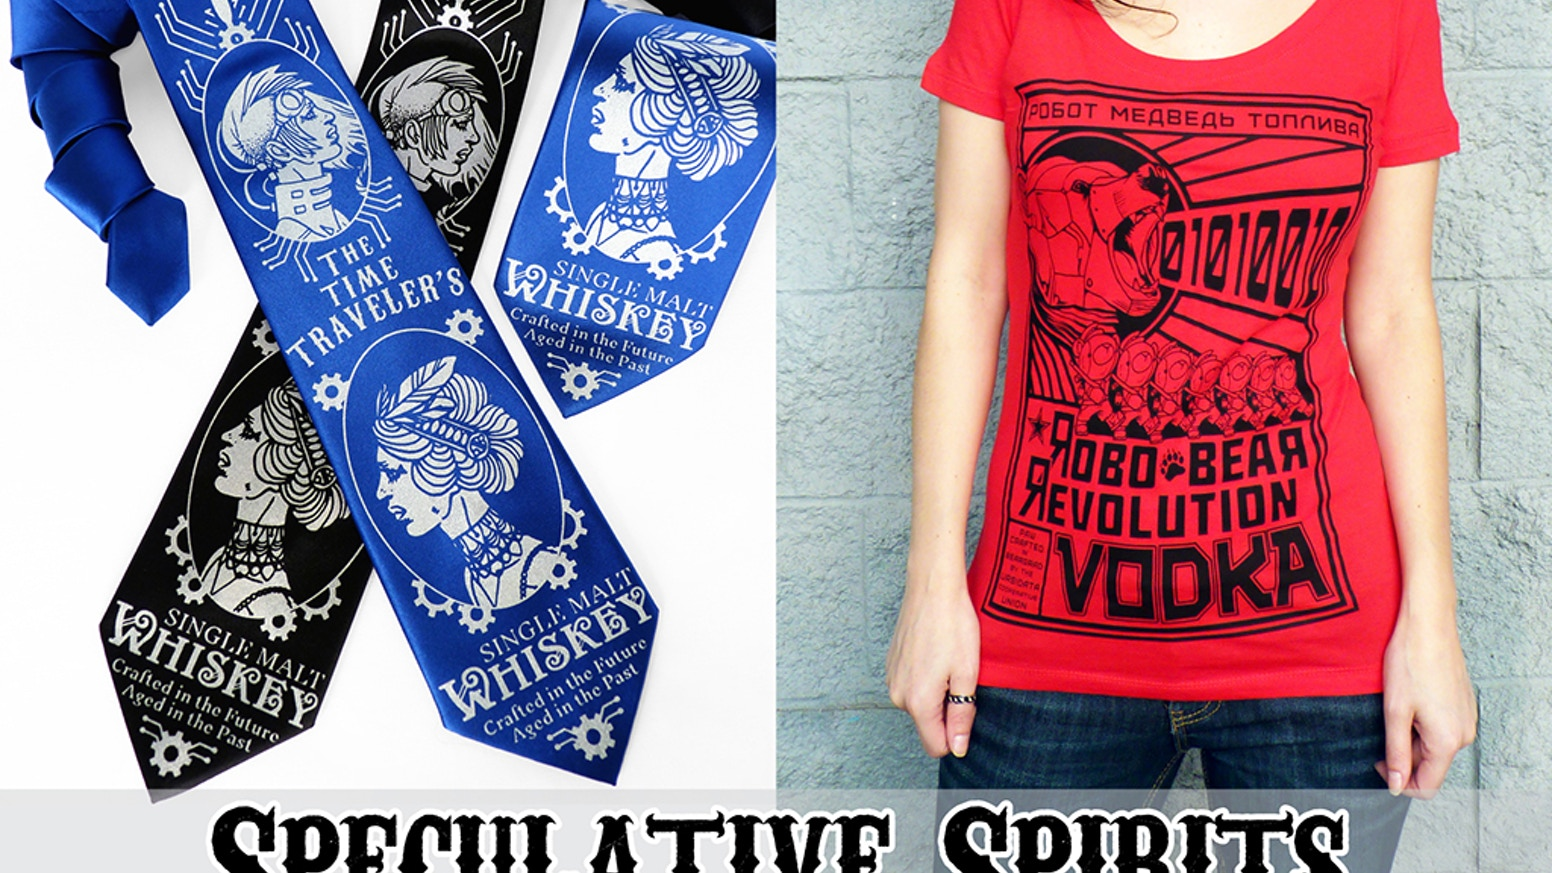 9b04560e3c725 Speculative Spirits: Apparel Inspired by Liquor + Fiction by Cody ...